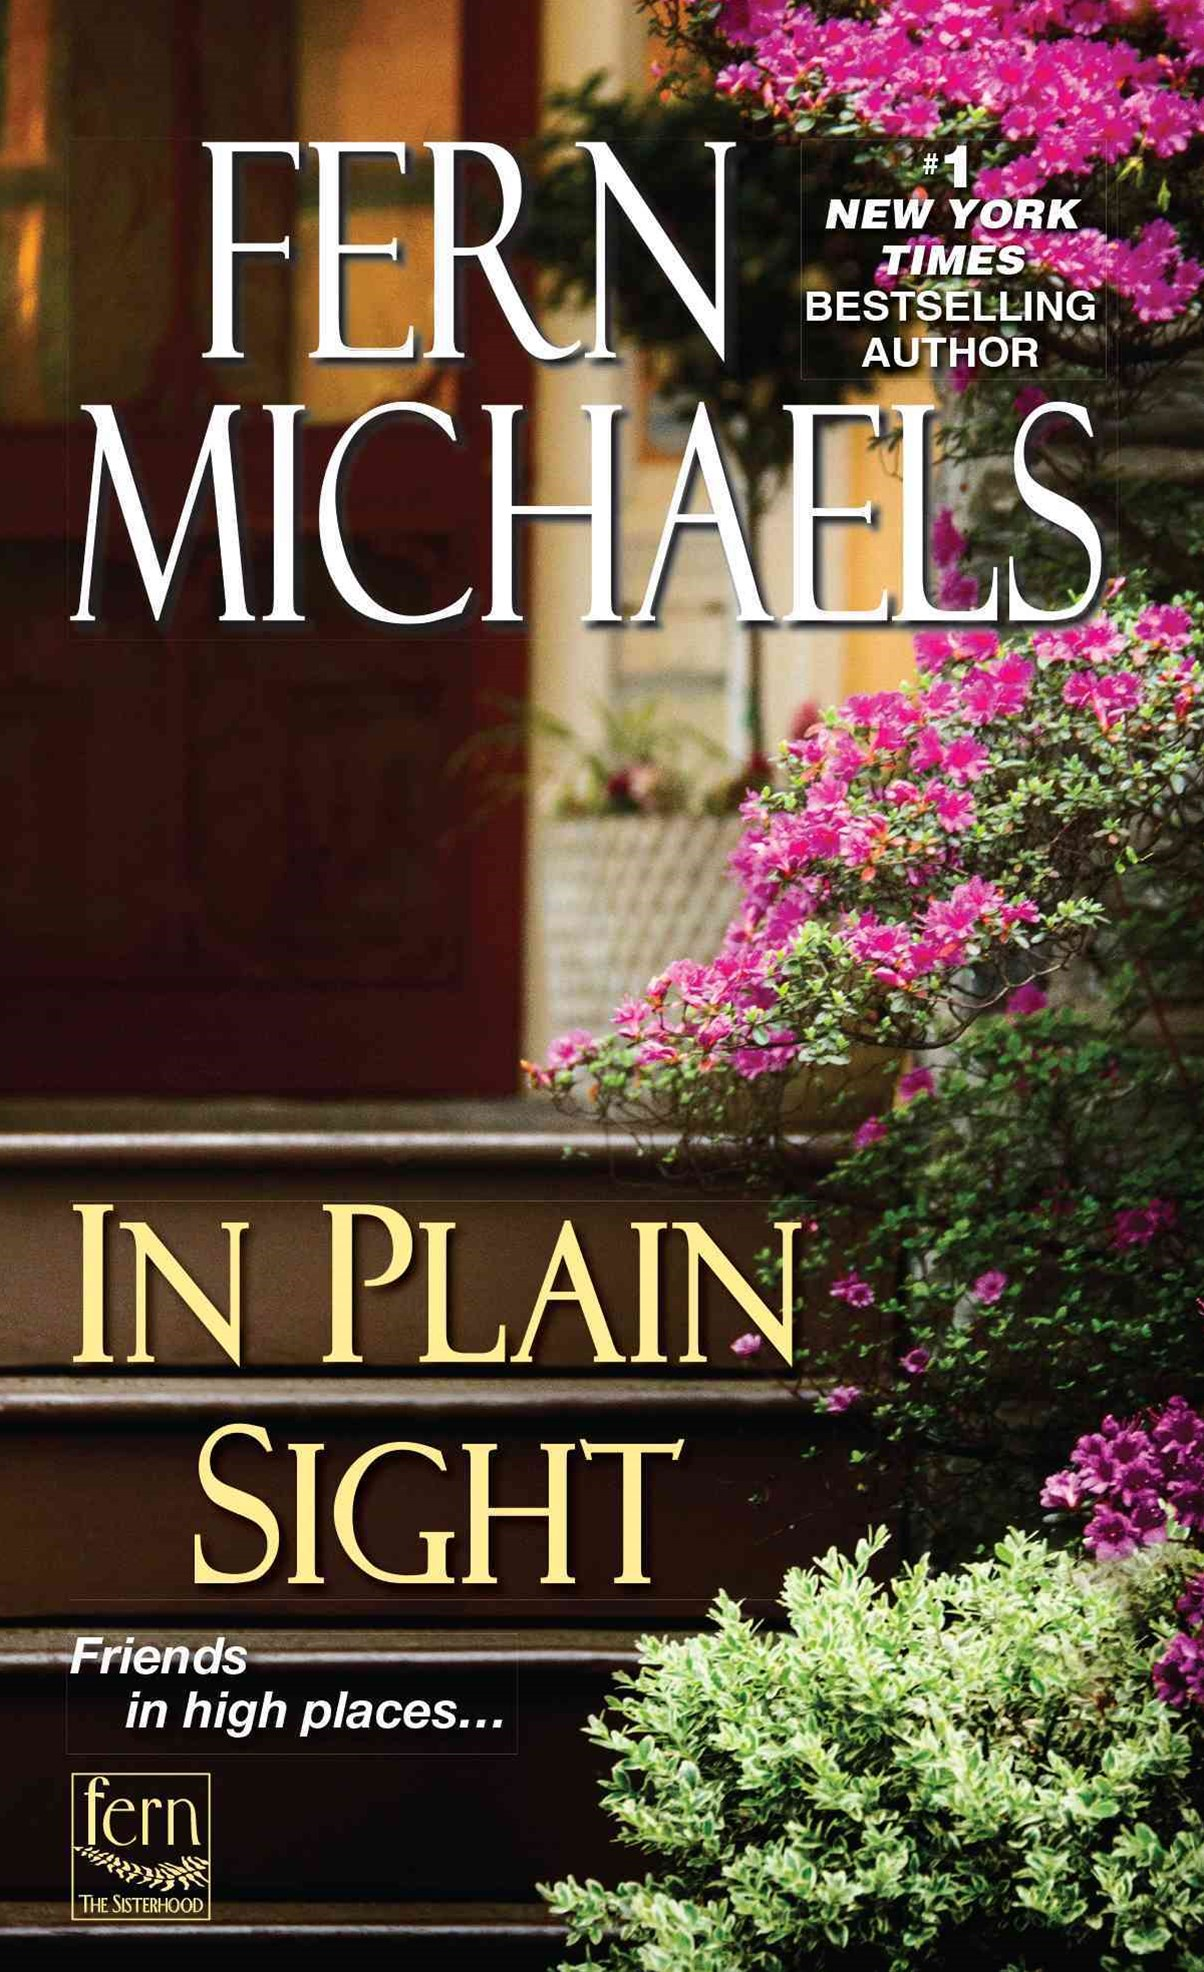 In Plain Sight